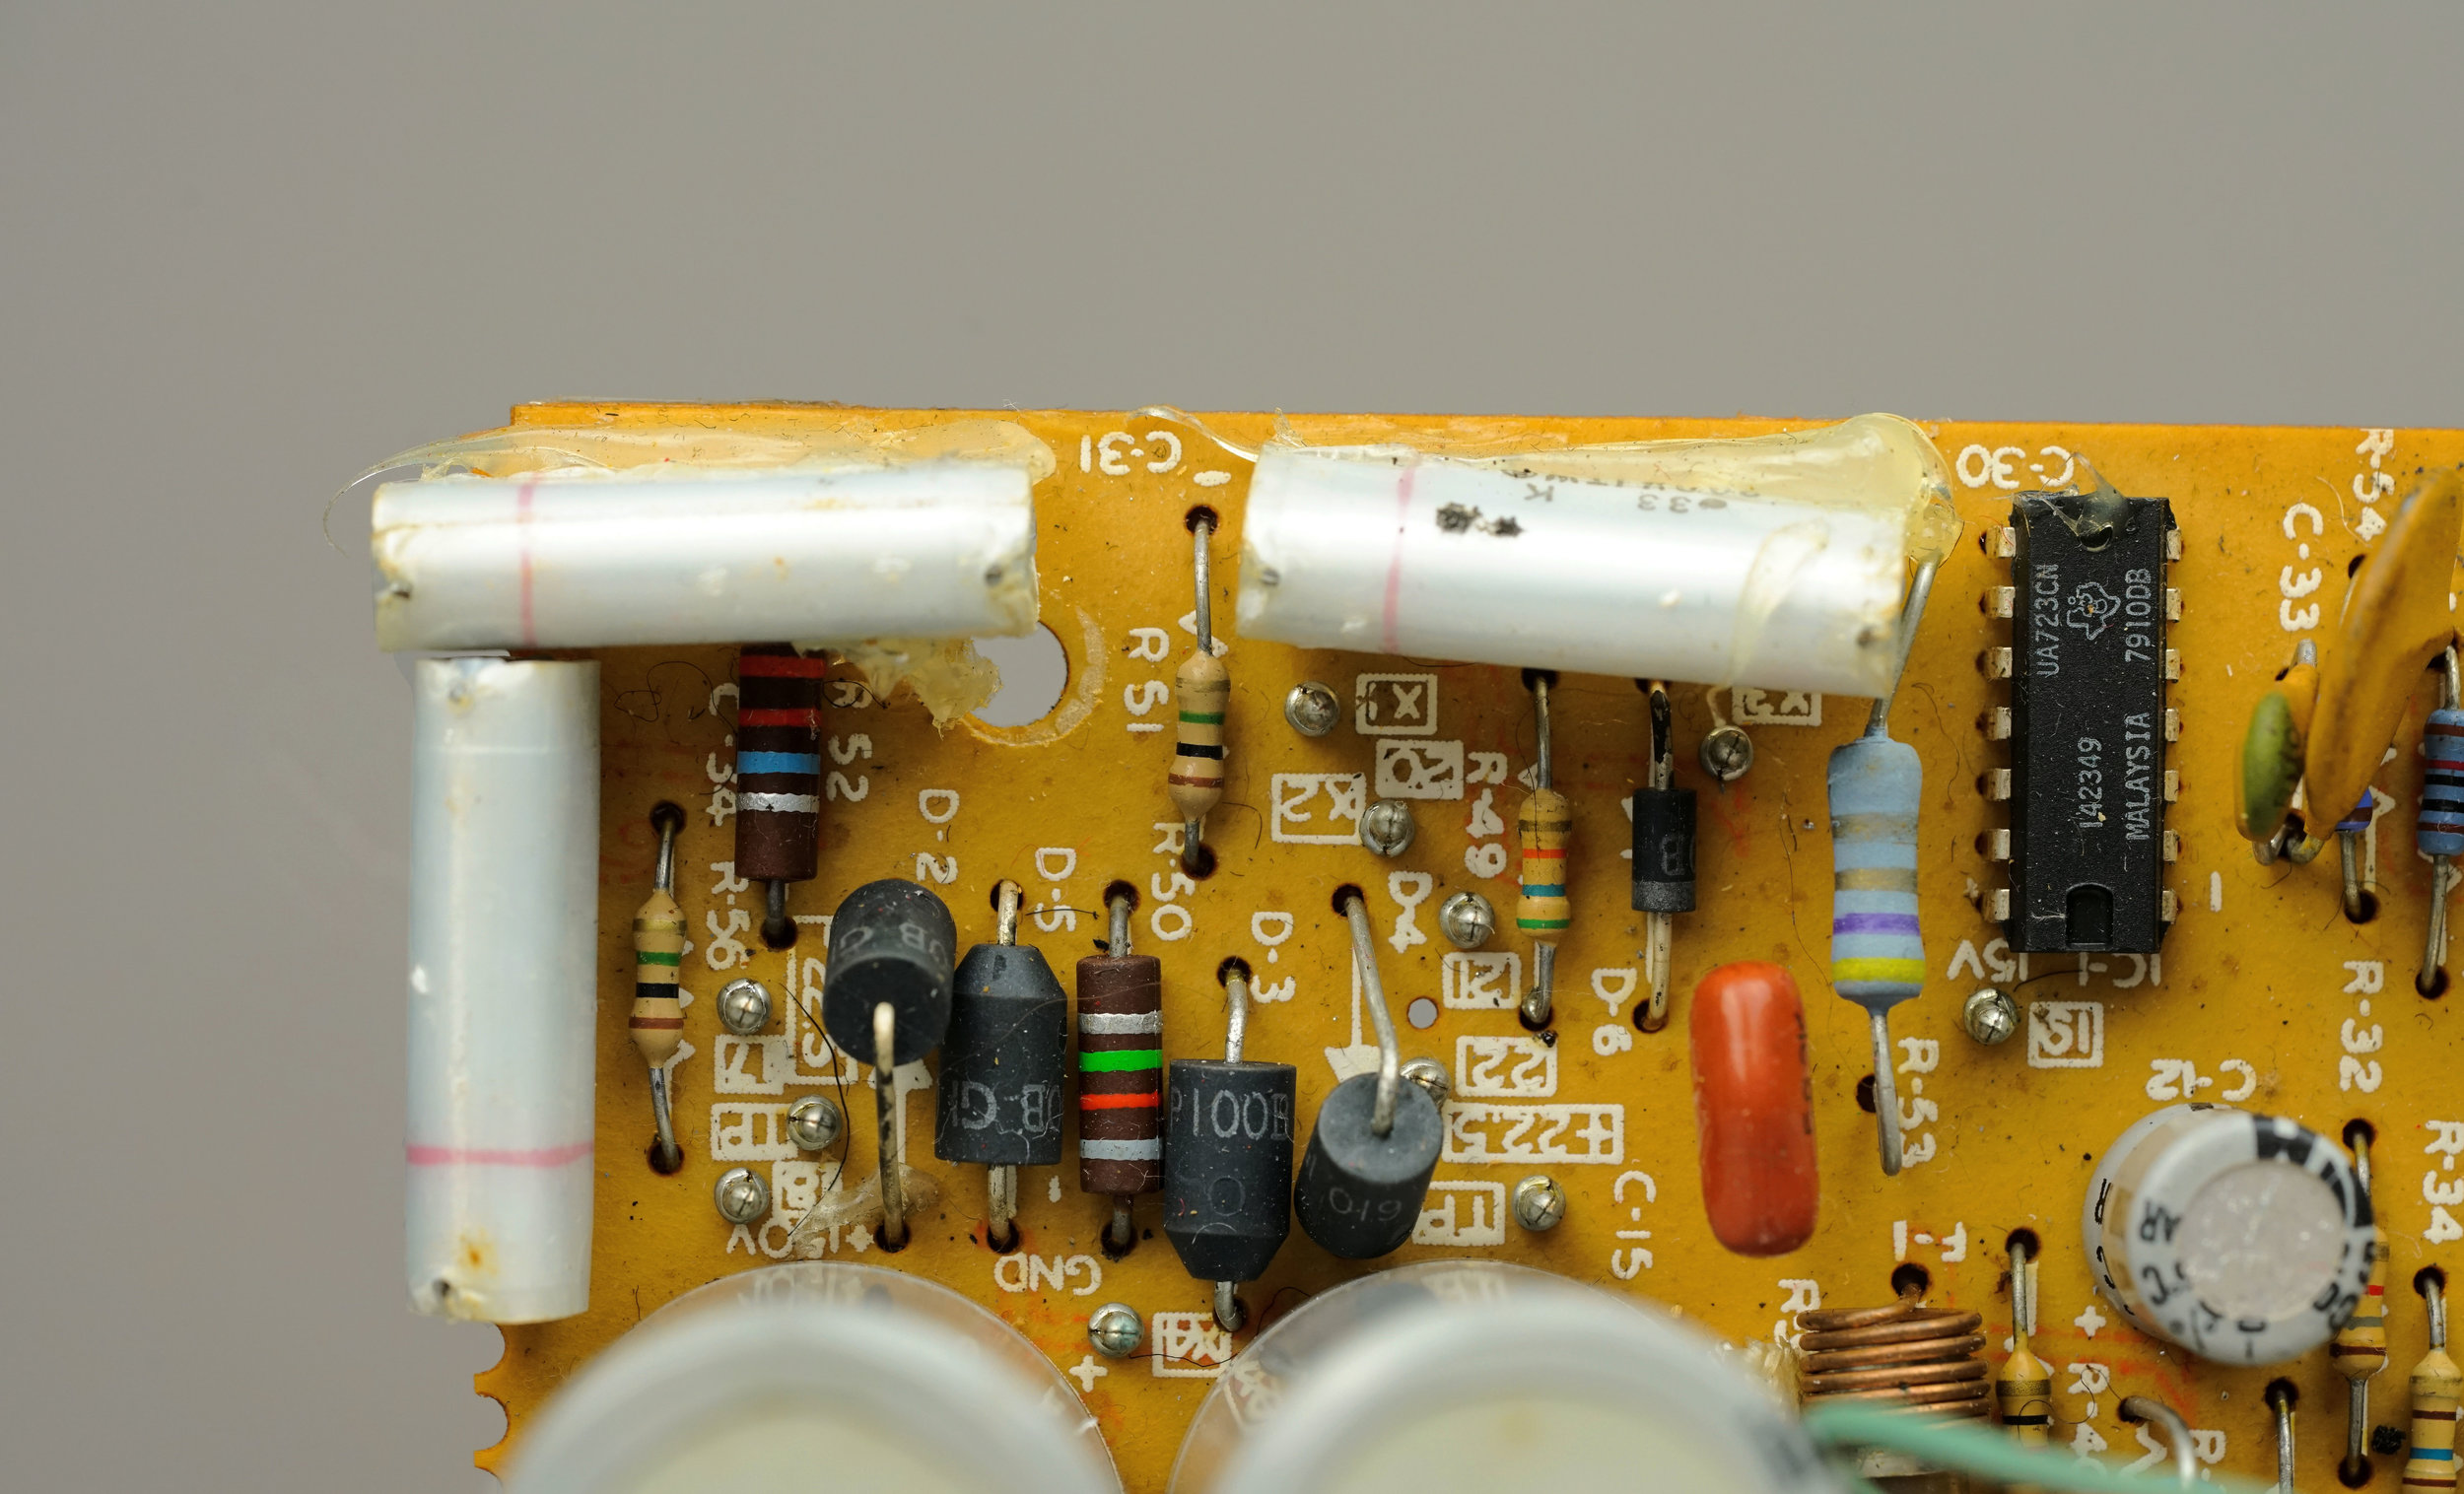 Carbon composition and carbon film resistors coexisting in a  Wurlitzer 200a  amplifier. This is the power supply section. It's possible that carbon composition resistors were used here because they tolerate high transient currents better than other styles.